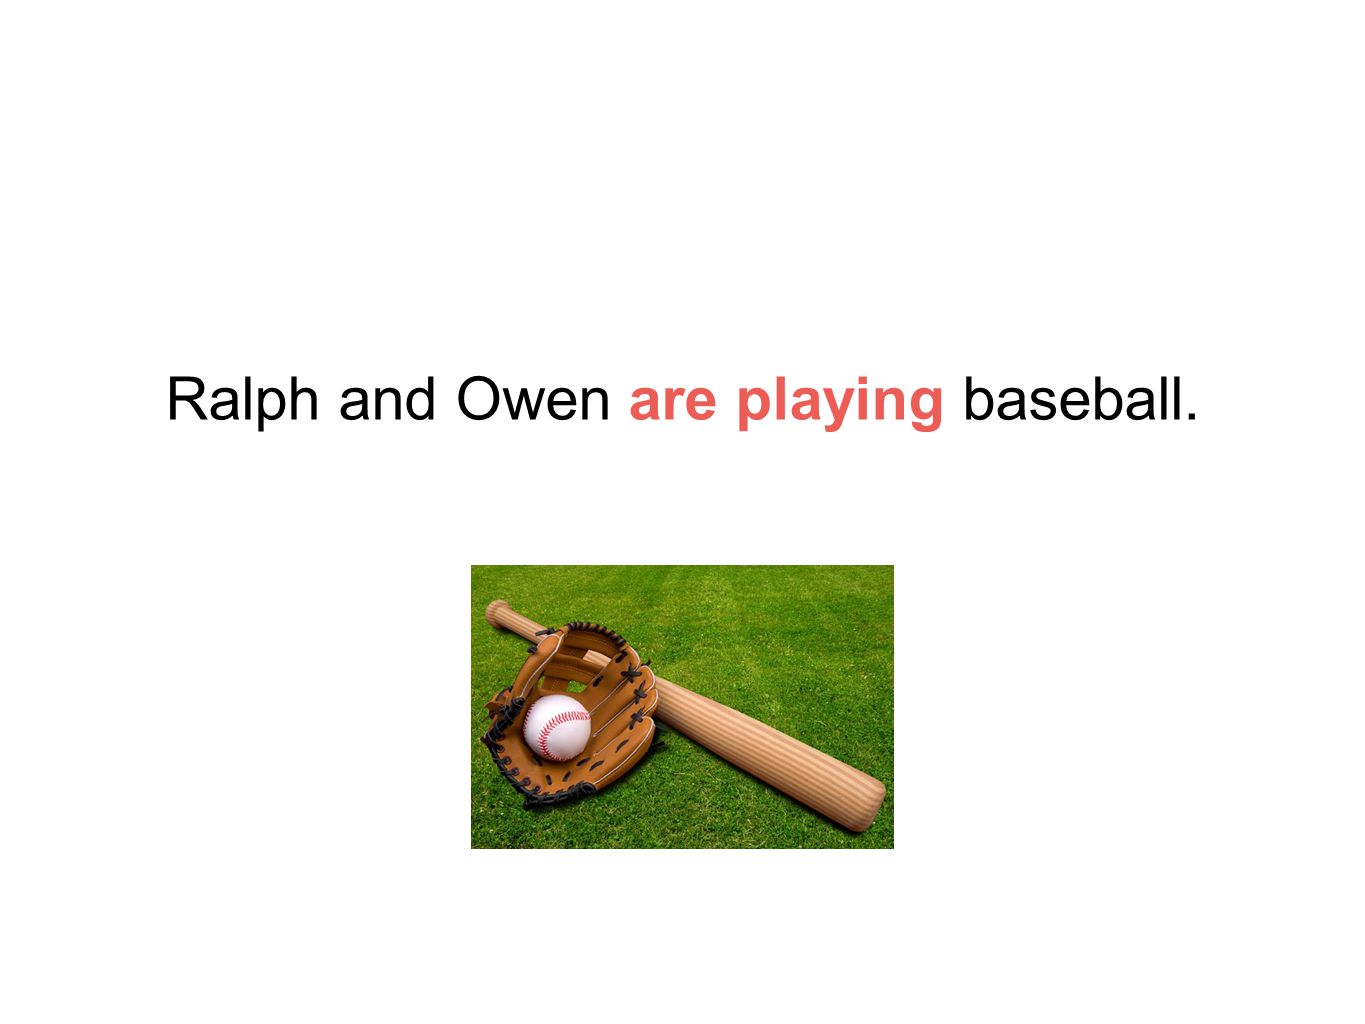 Ralph and Owen are playing baseball.